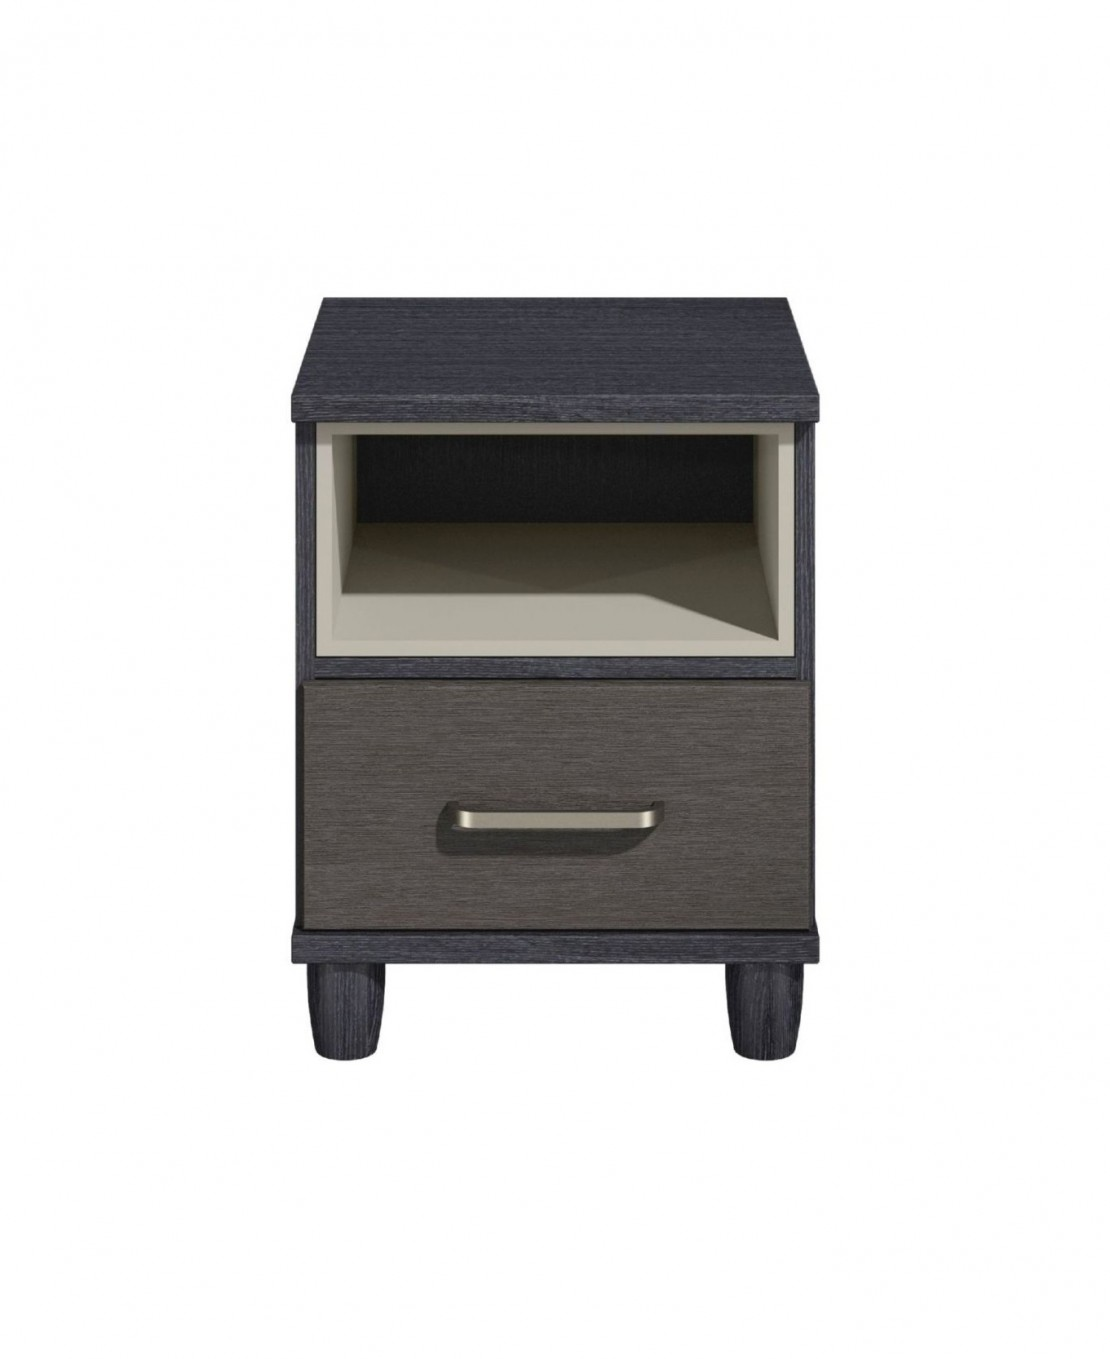 Deco1 Drawer Pod Chest Black Oak Carcase With Bedside